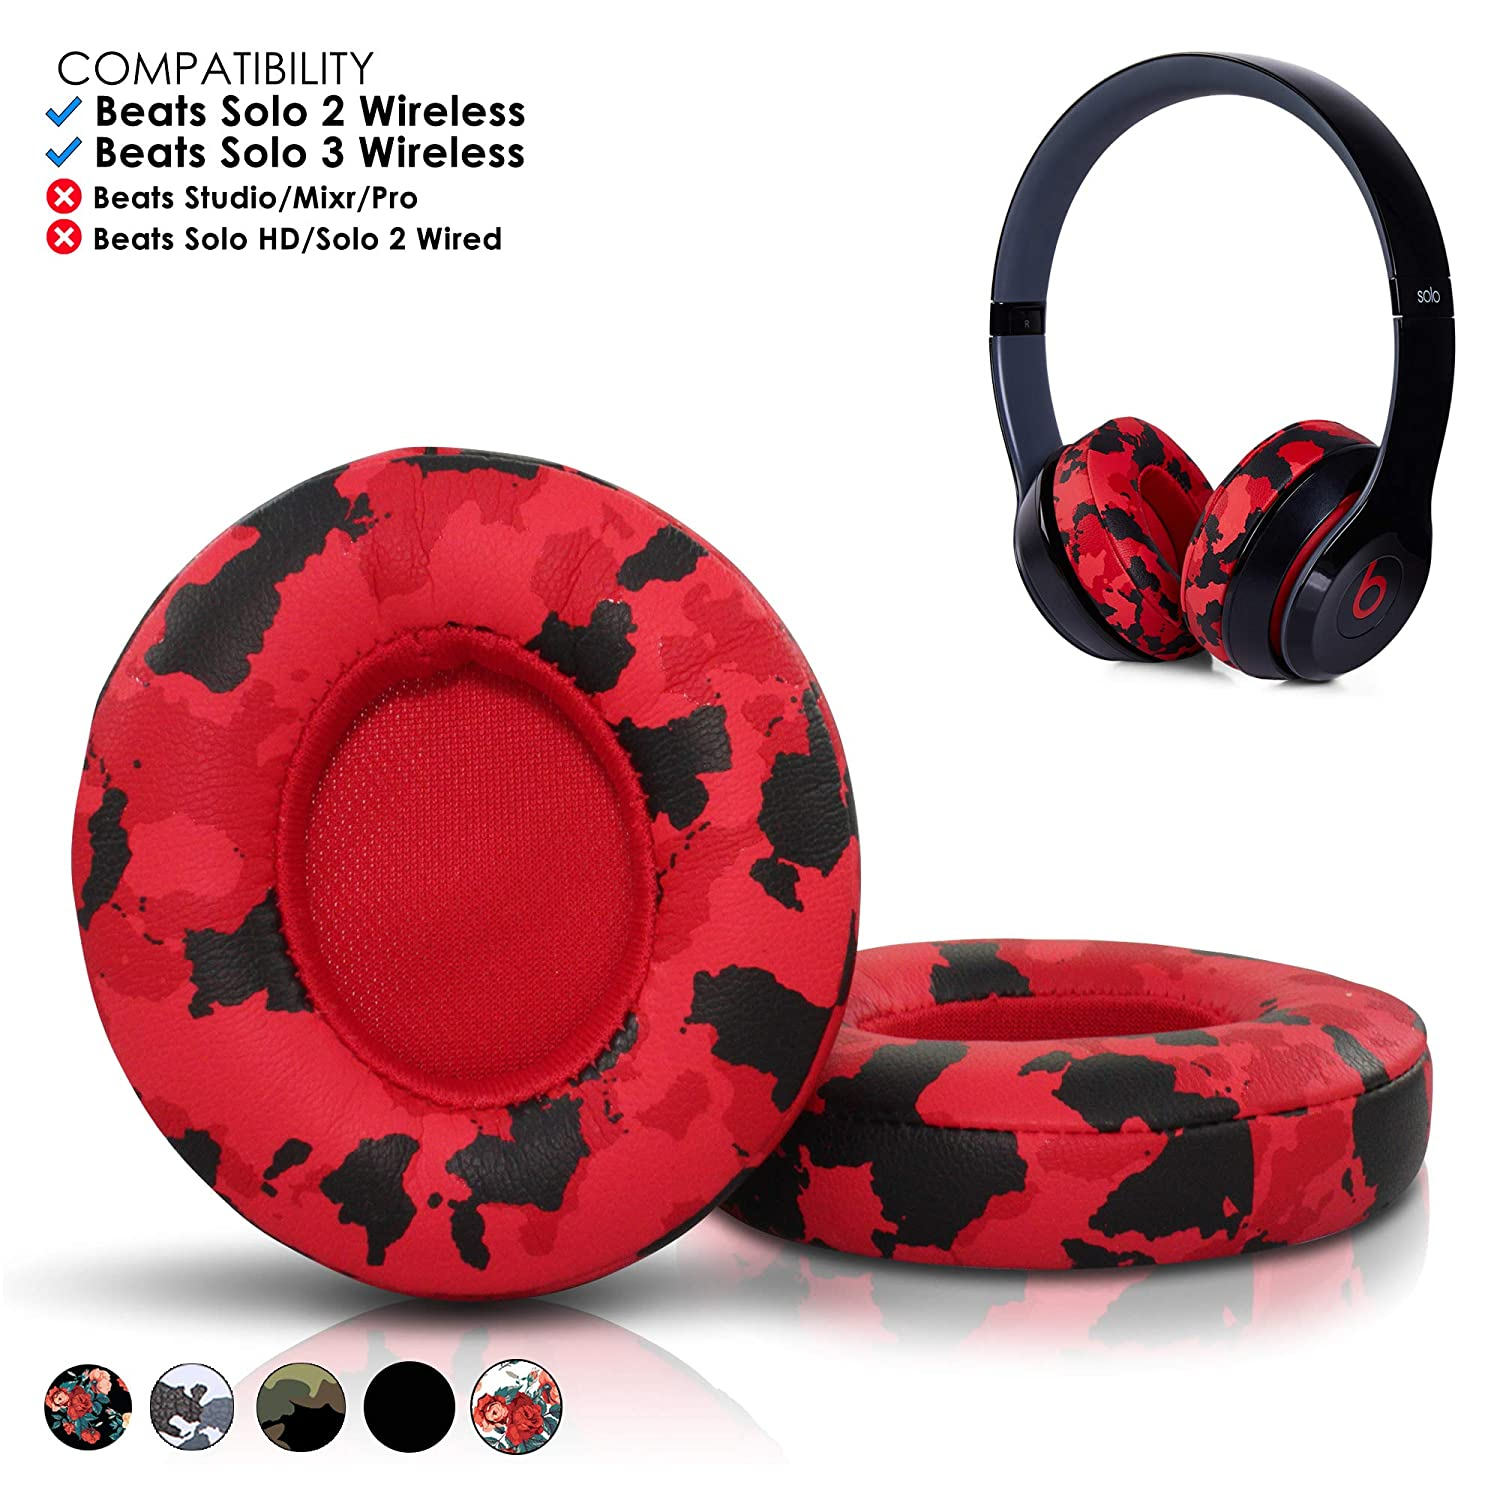 3f64602b1e9 Amazon.com: Wicked Cushions Beats Solo 2 Ear Pad Replacement - Compatible  With Solo 2 & 3 WIRELESS On Ear Headphones | Red Camo: Home Audio & Theater